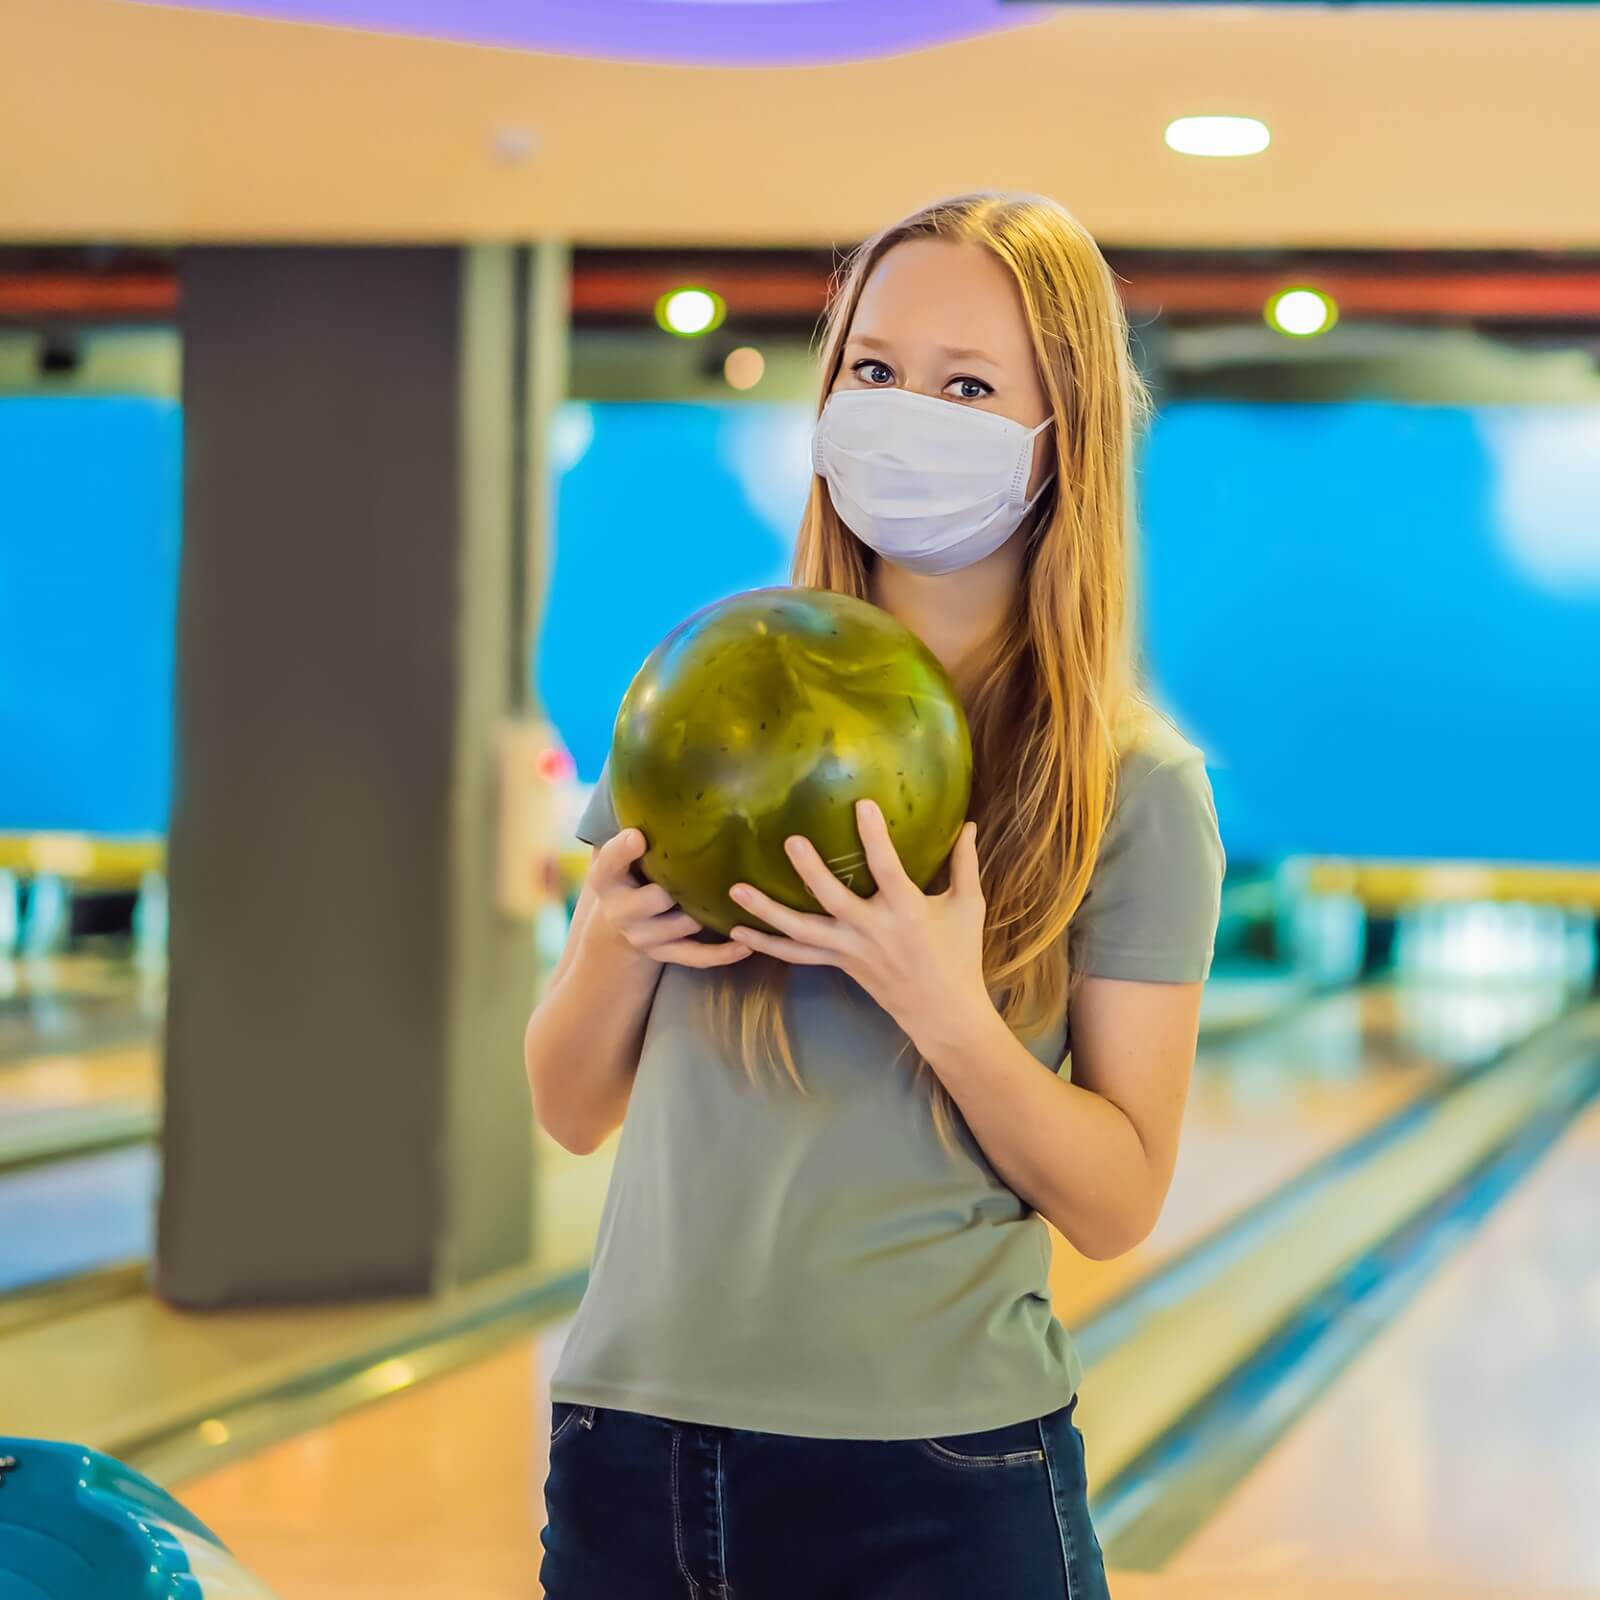 Woman in mask holding bowling ball during the pandemic